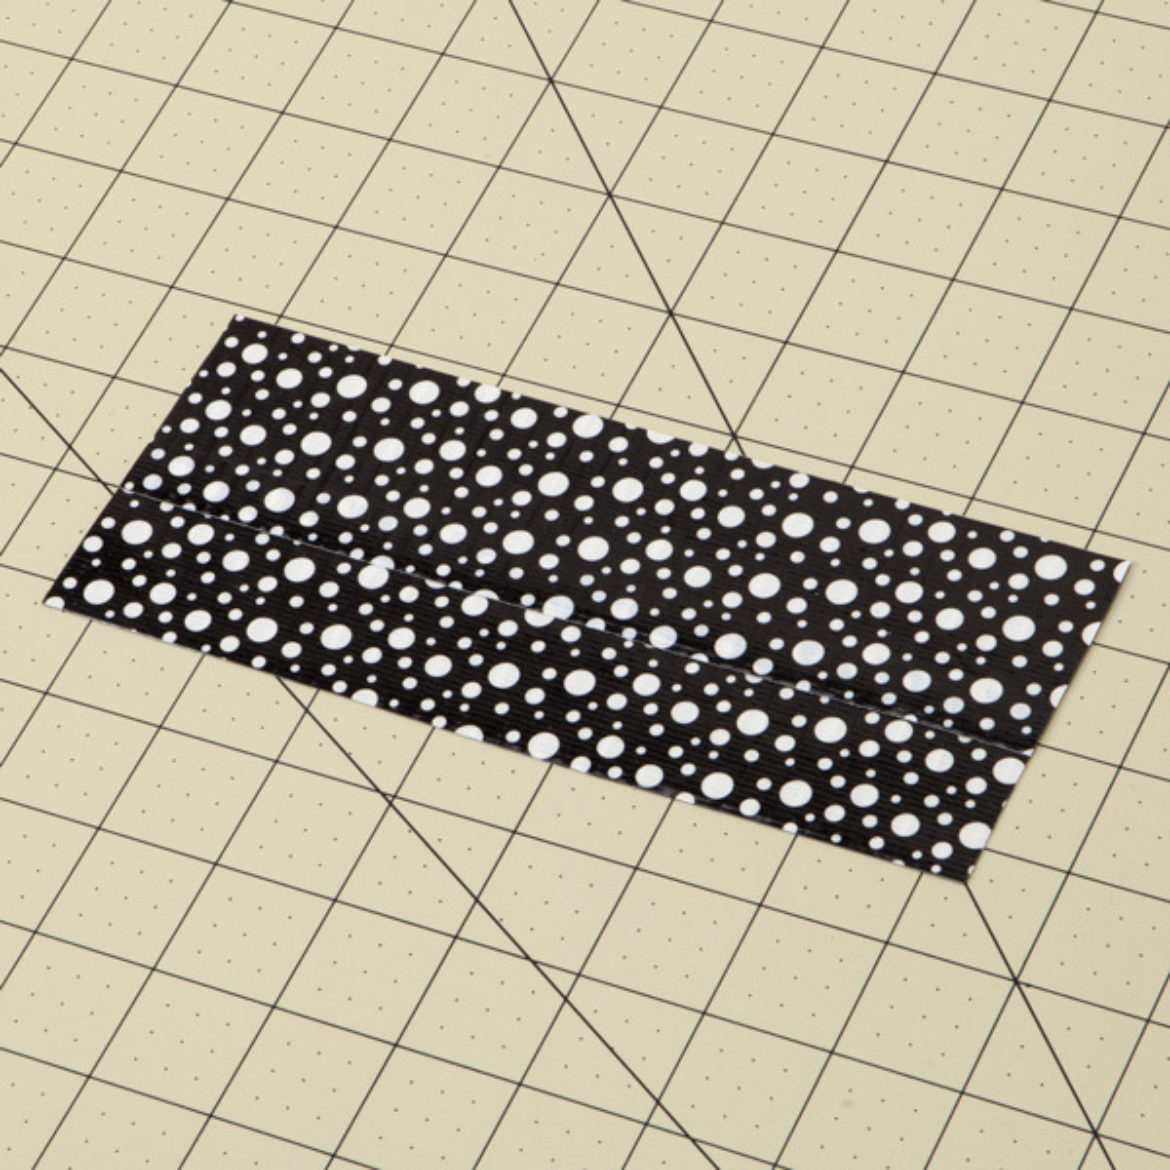 Piece of double sided Duck Tape fabric